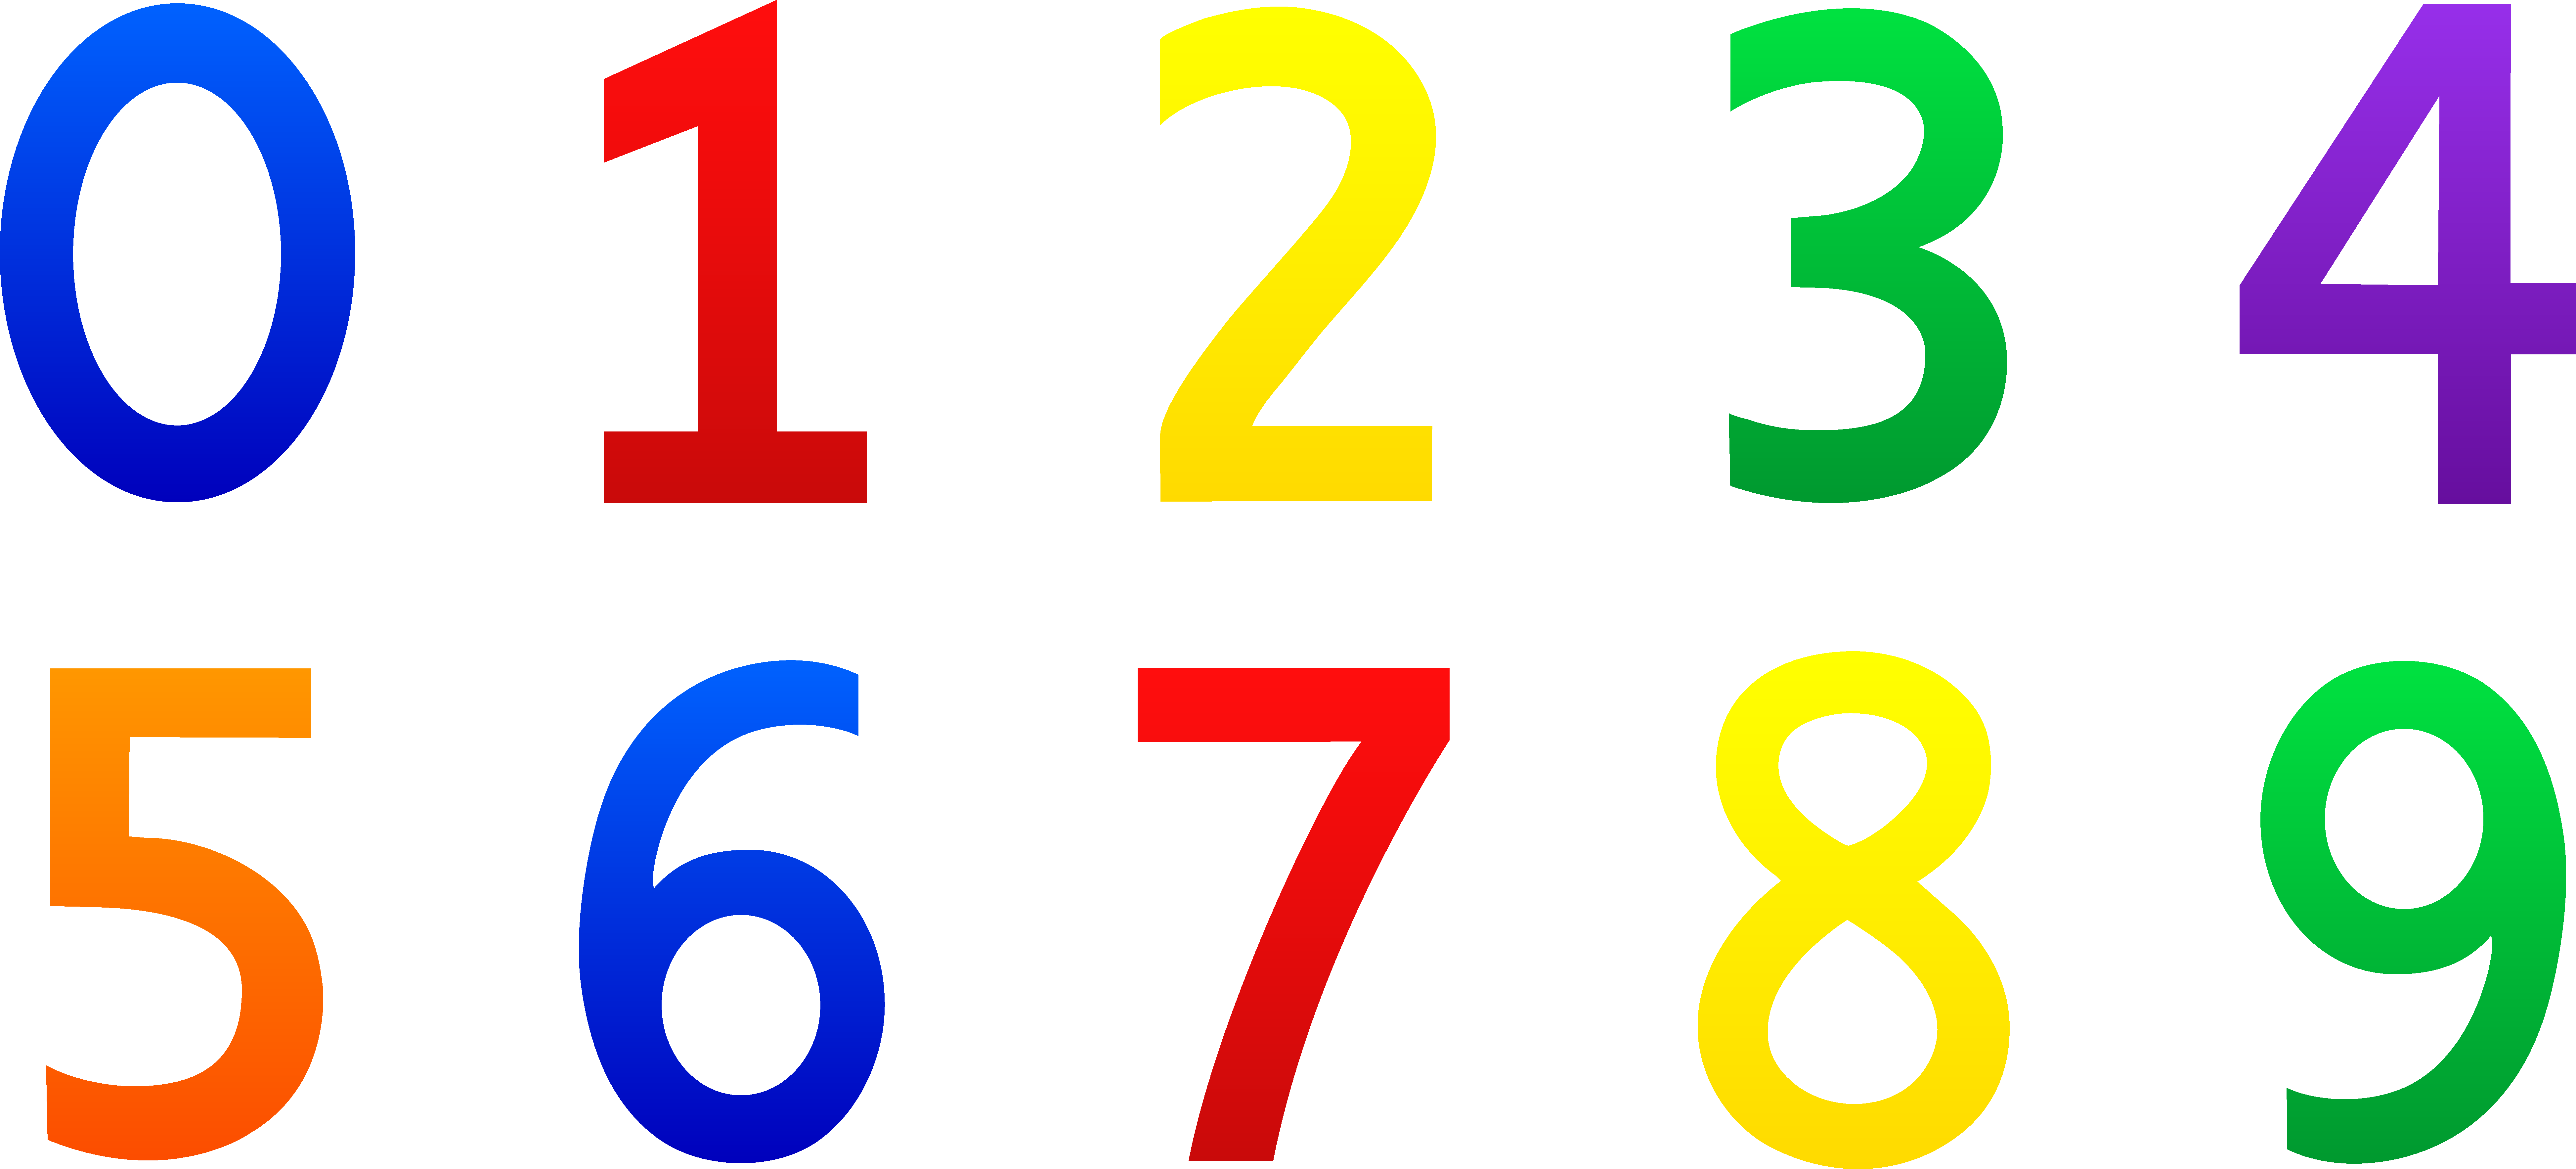 Whole numbers counting definition. Number clipart natural number image black and white library